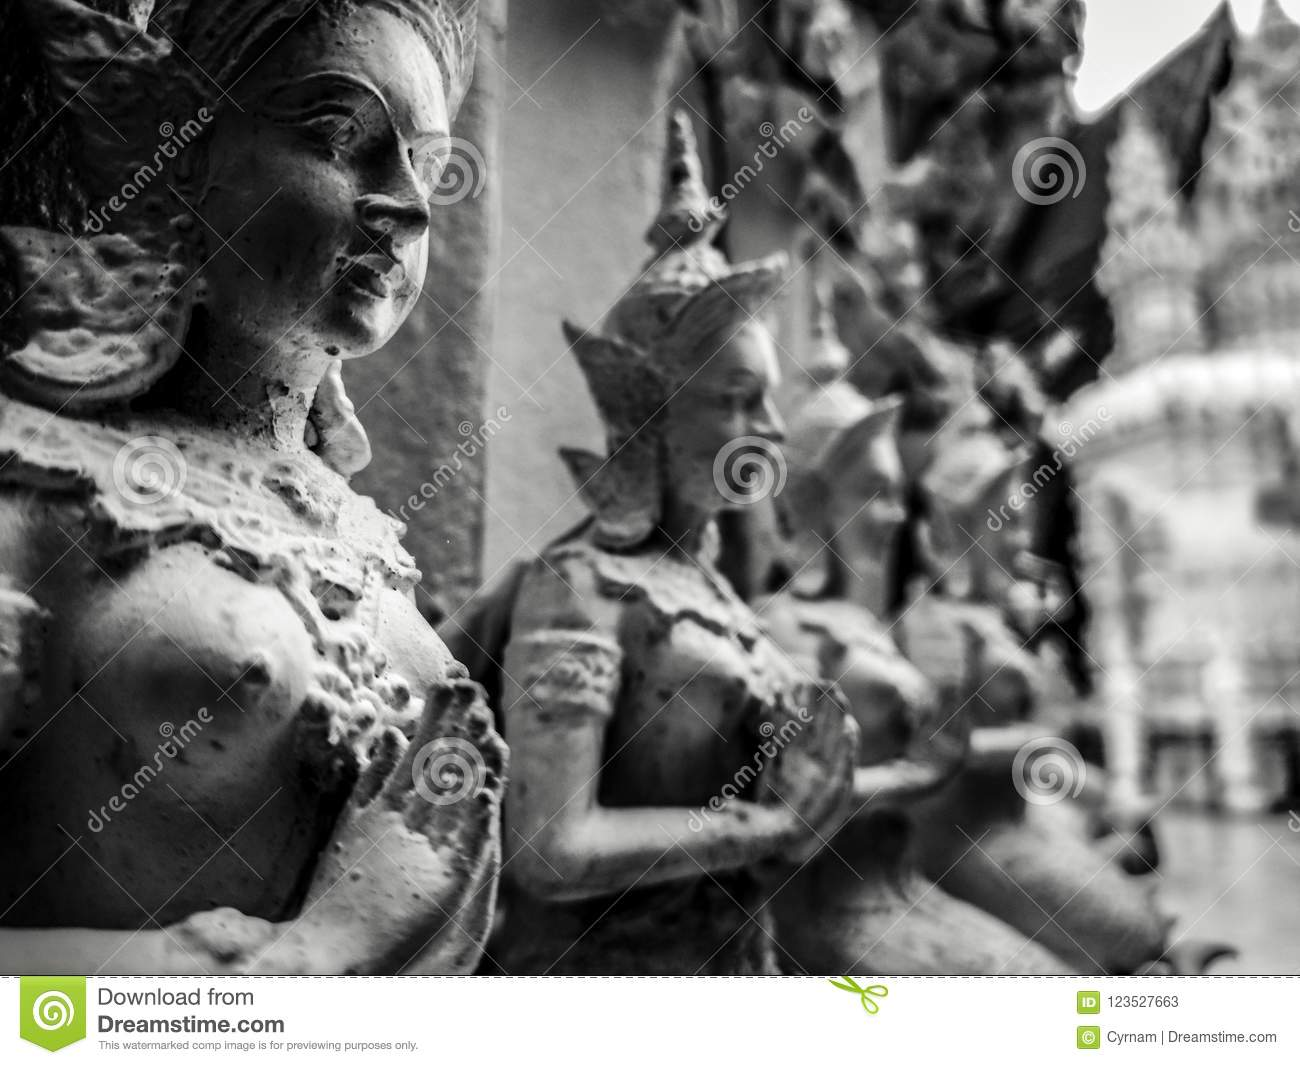 Beautiful buddhist sculpture hands clasped in prayer, detail of buddhist figures carved in Wat Sanpayangluang at Lamphun, Thailand